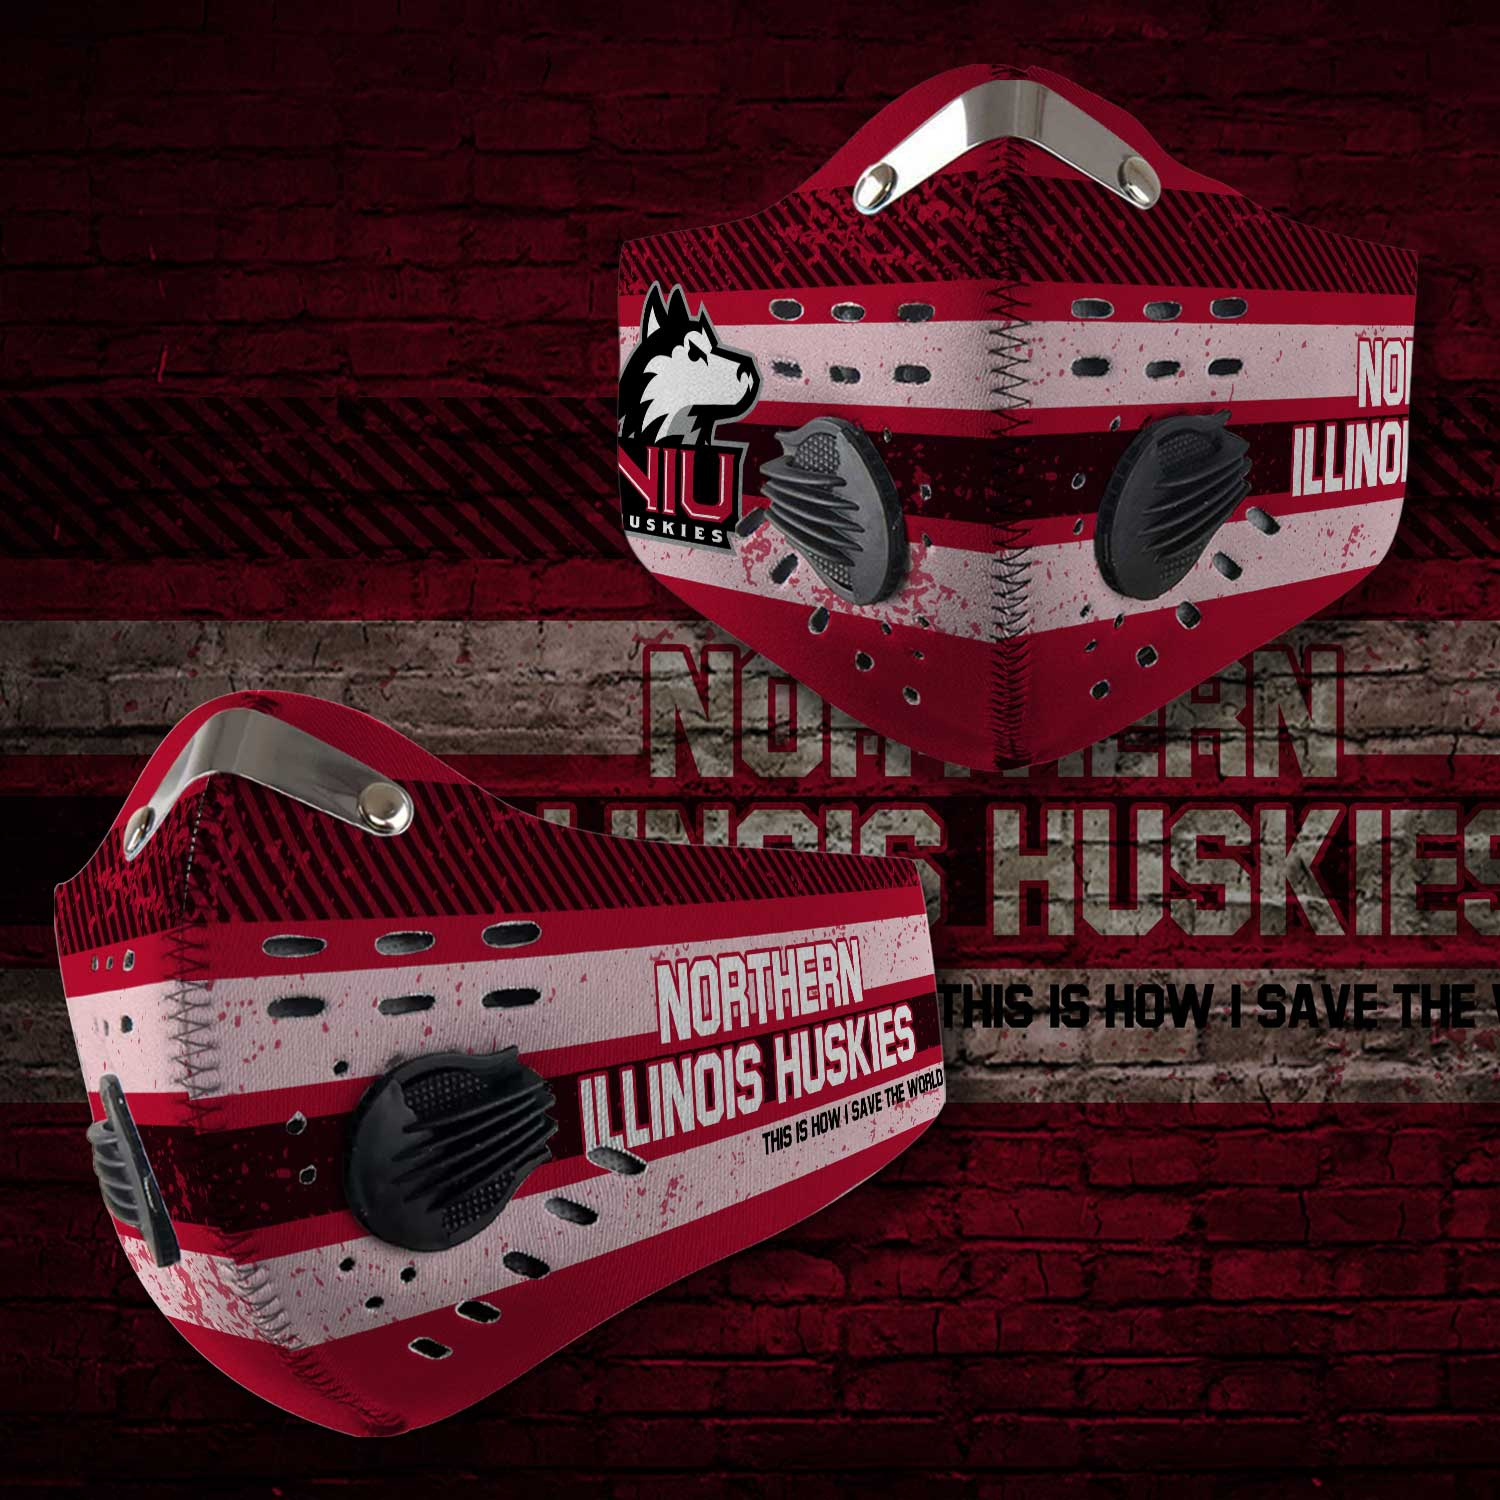 Northern illinois huskies this is how i save the world face mask 1